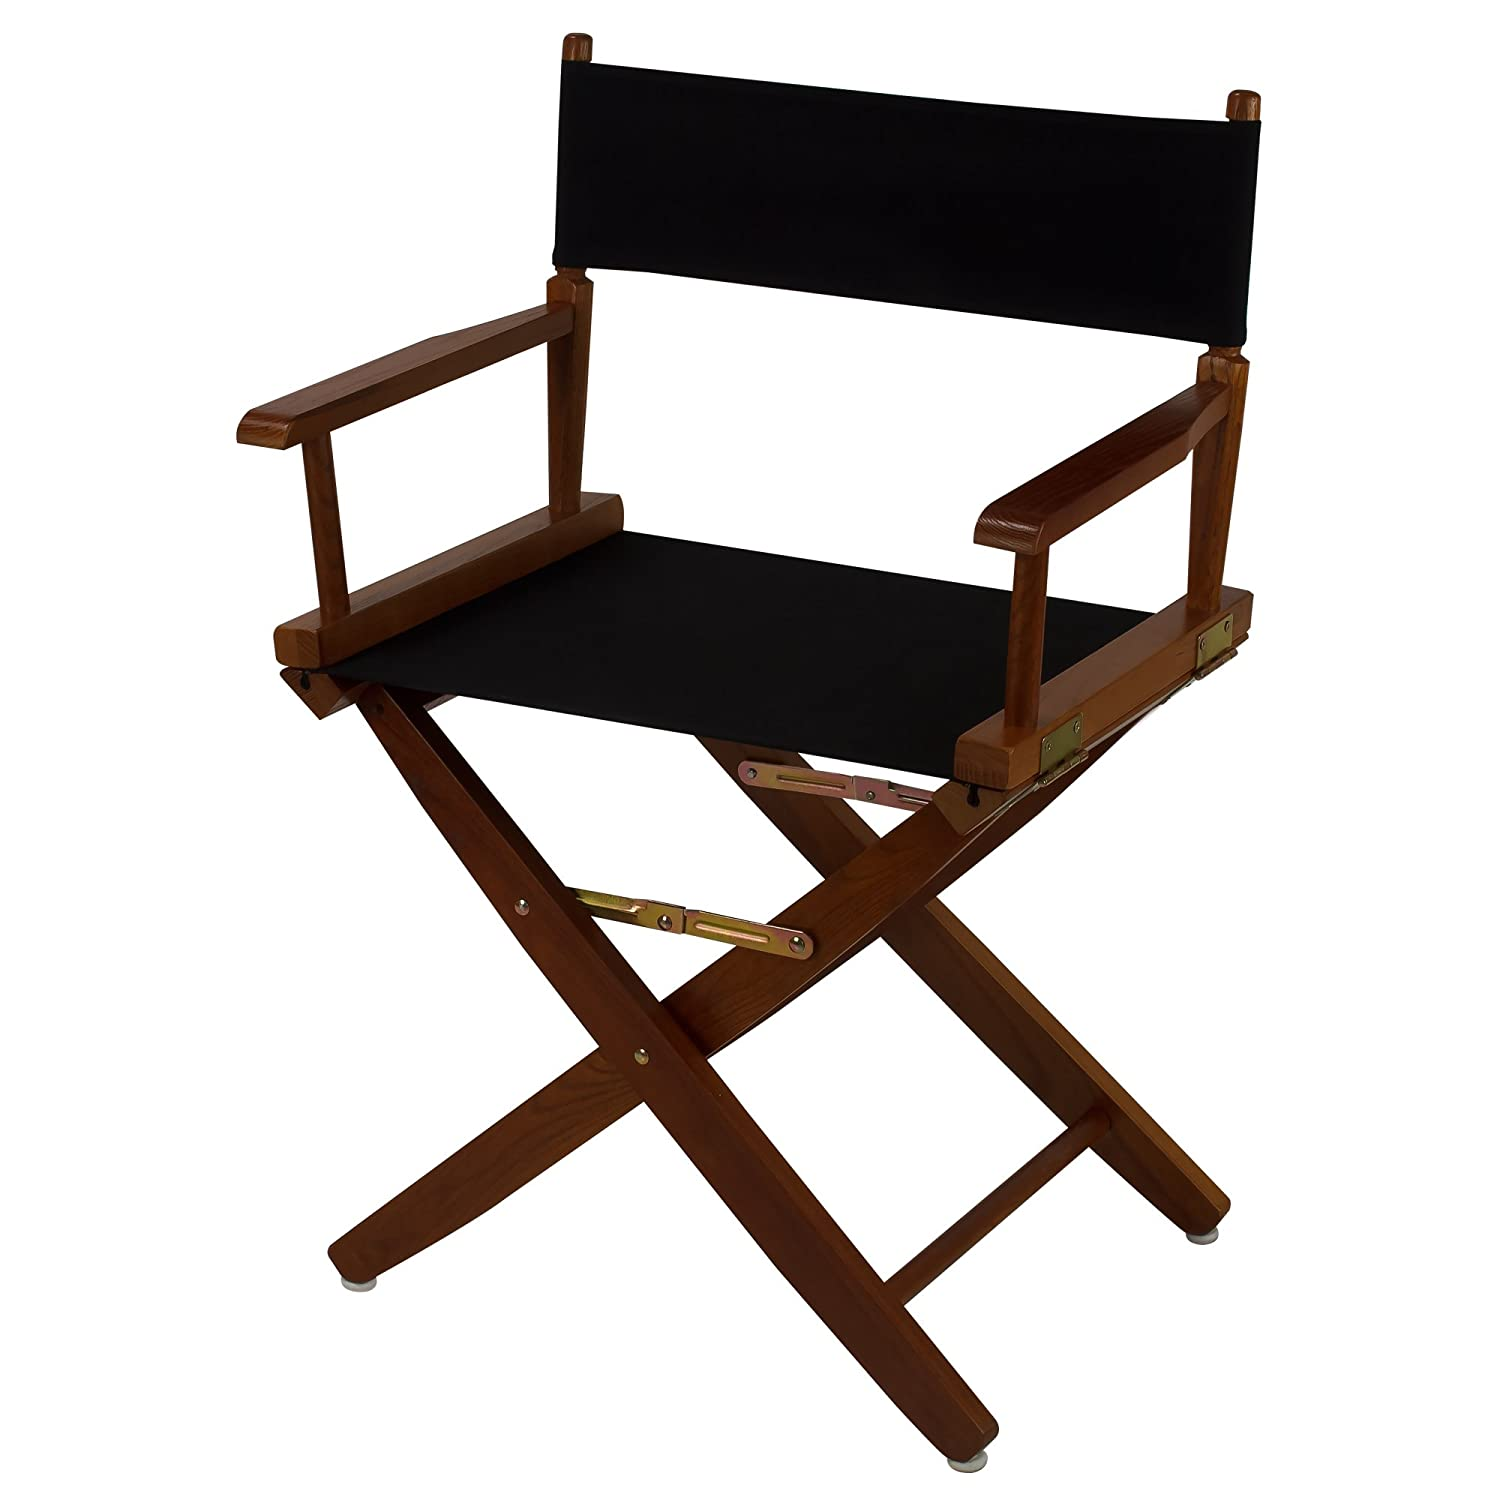 American Trails Extra-Wide Premium 18 Director's Chair Natural Frame with Black Canvas 206-00/032-15